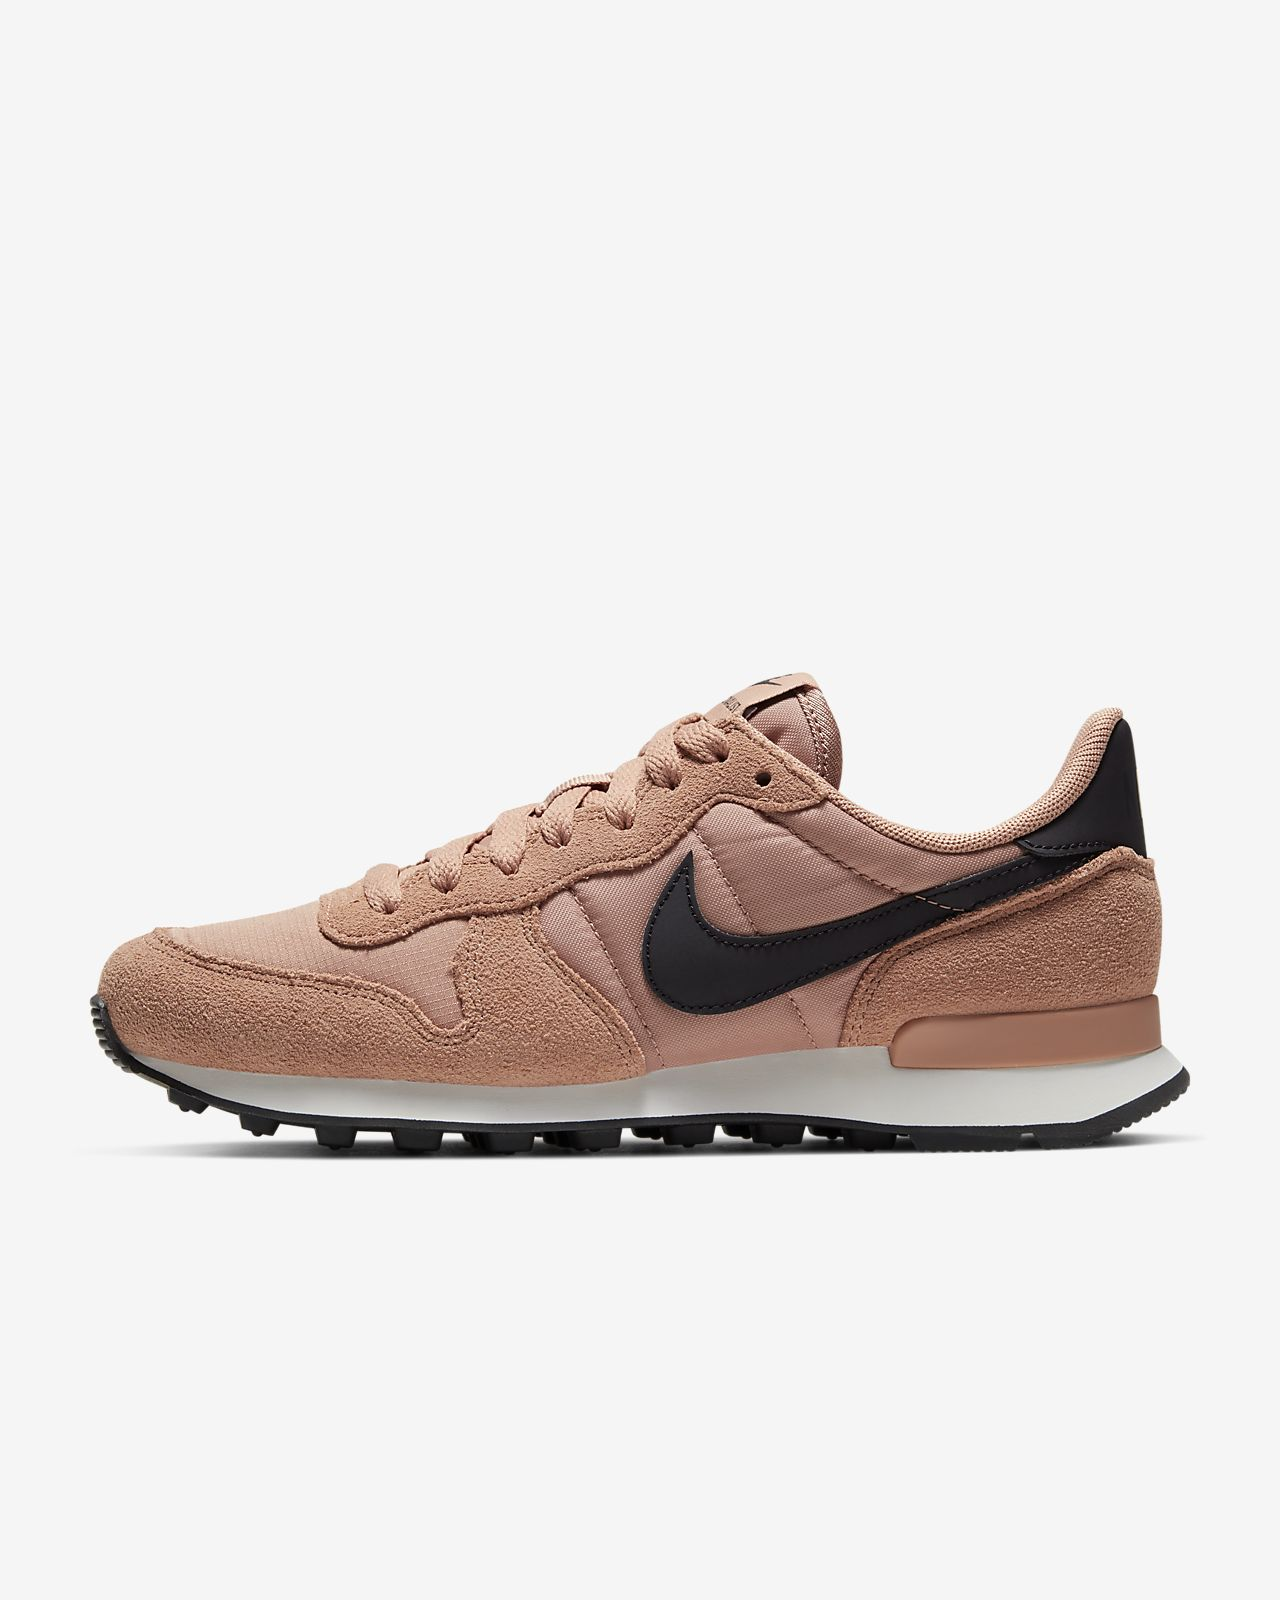 3947b5ac8cfda Low Resolution Chaussure Nike Internationalist pour Femme Chaussure Nike  Internationalist pour Femme